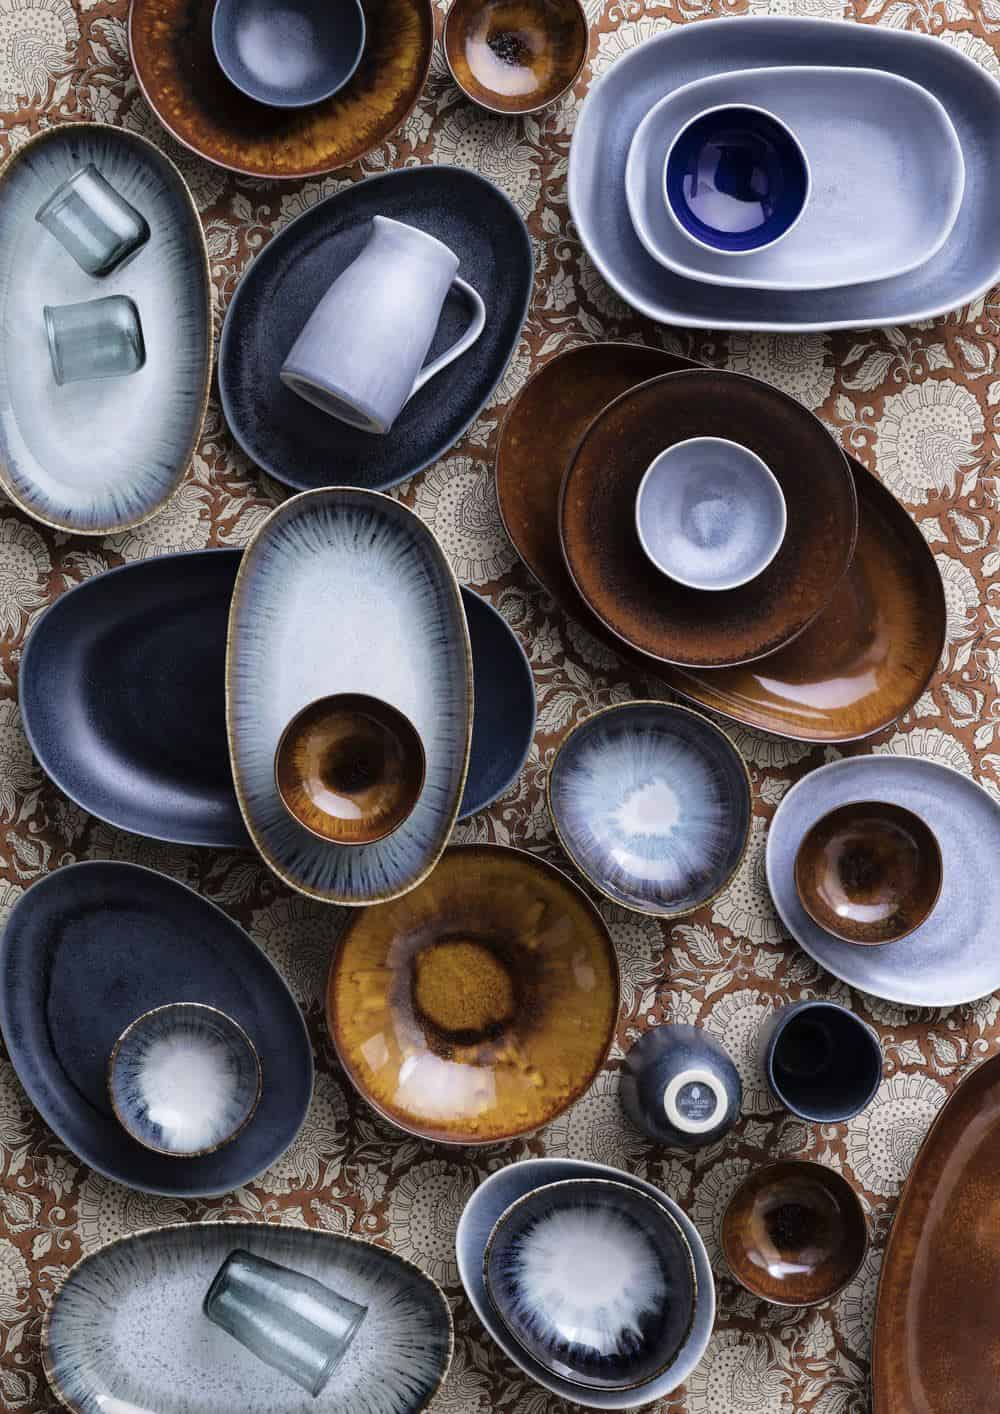 Shekåbba The Danish Home stocks a range of Danish homewares. A table seen from above full of ceramic serveware in earthy tones